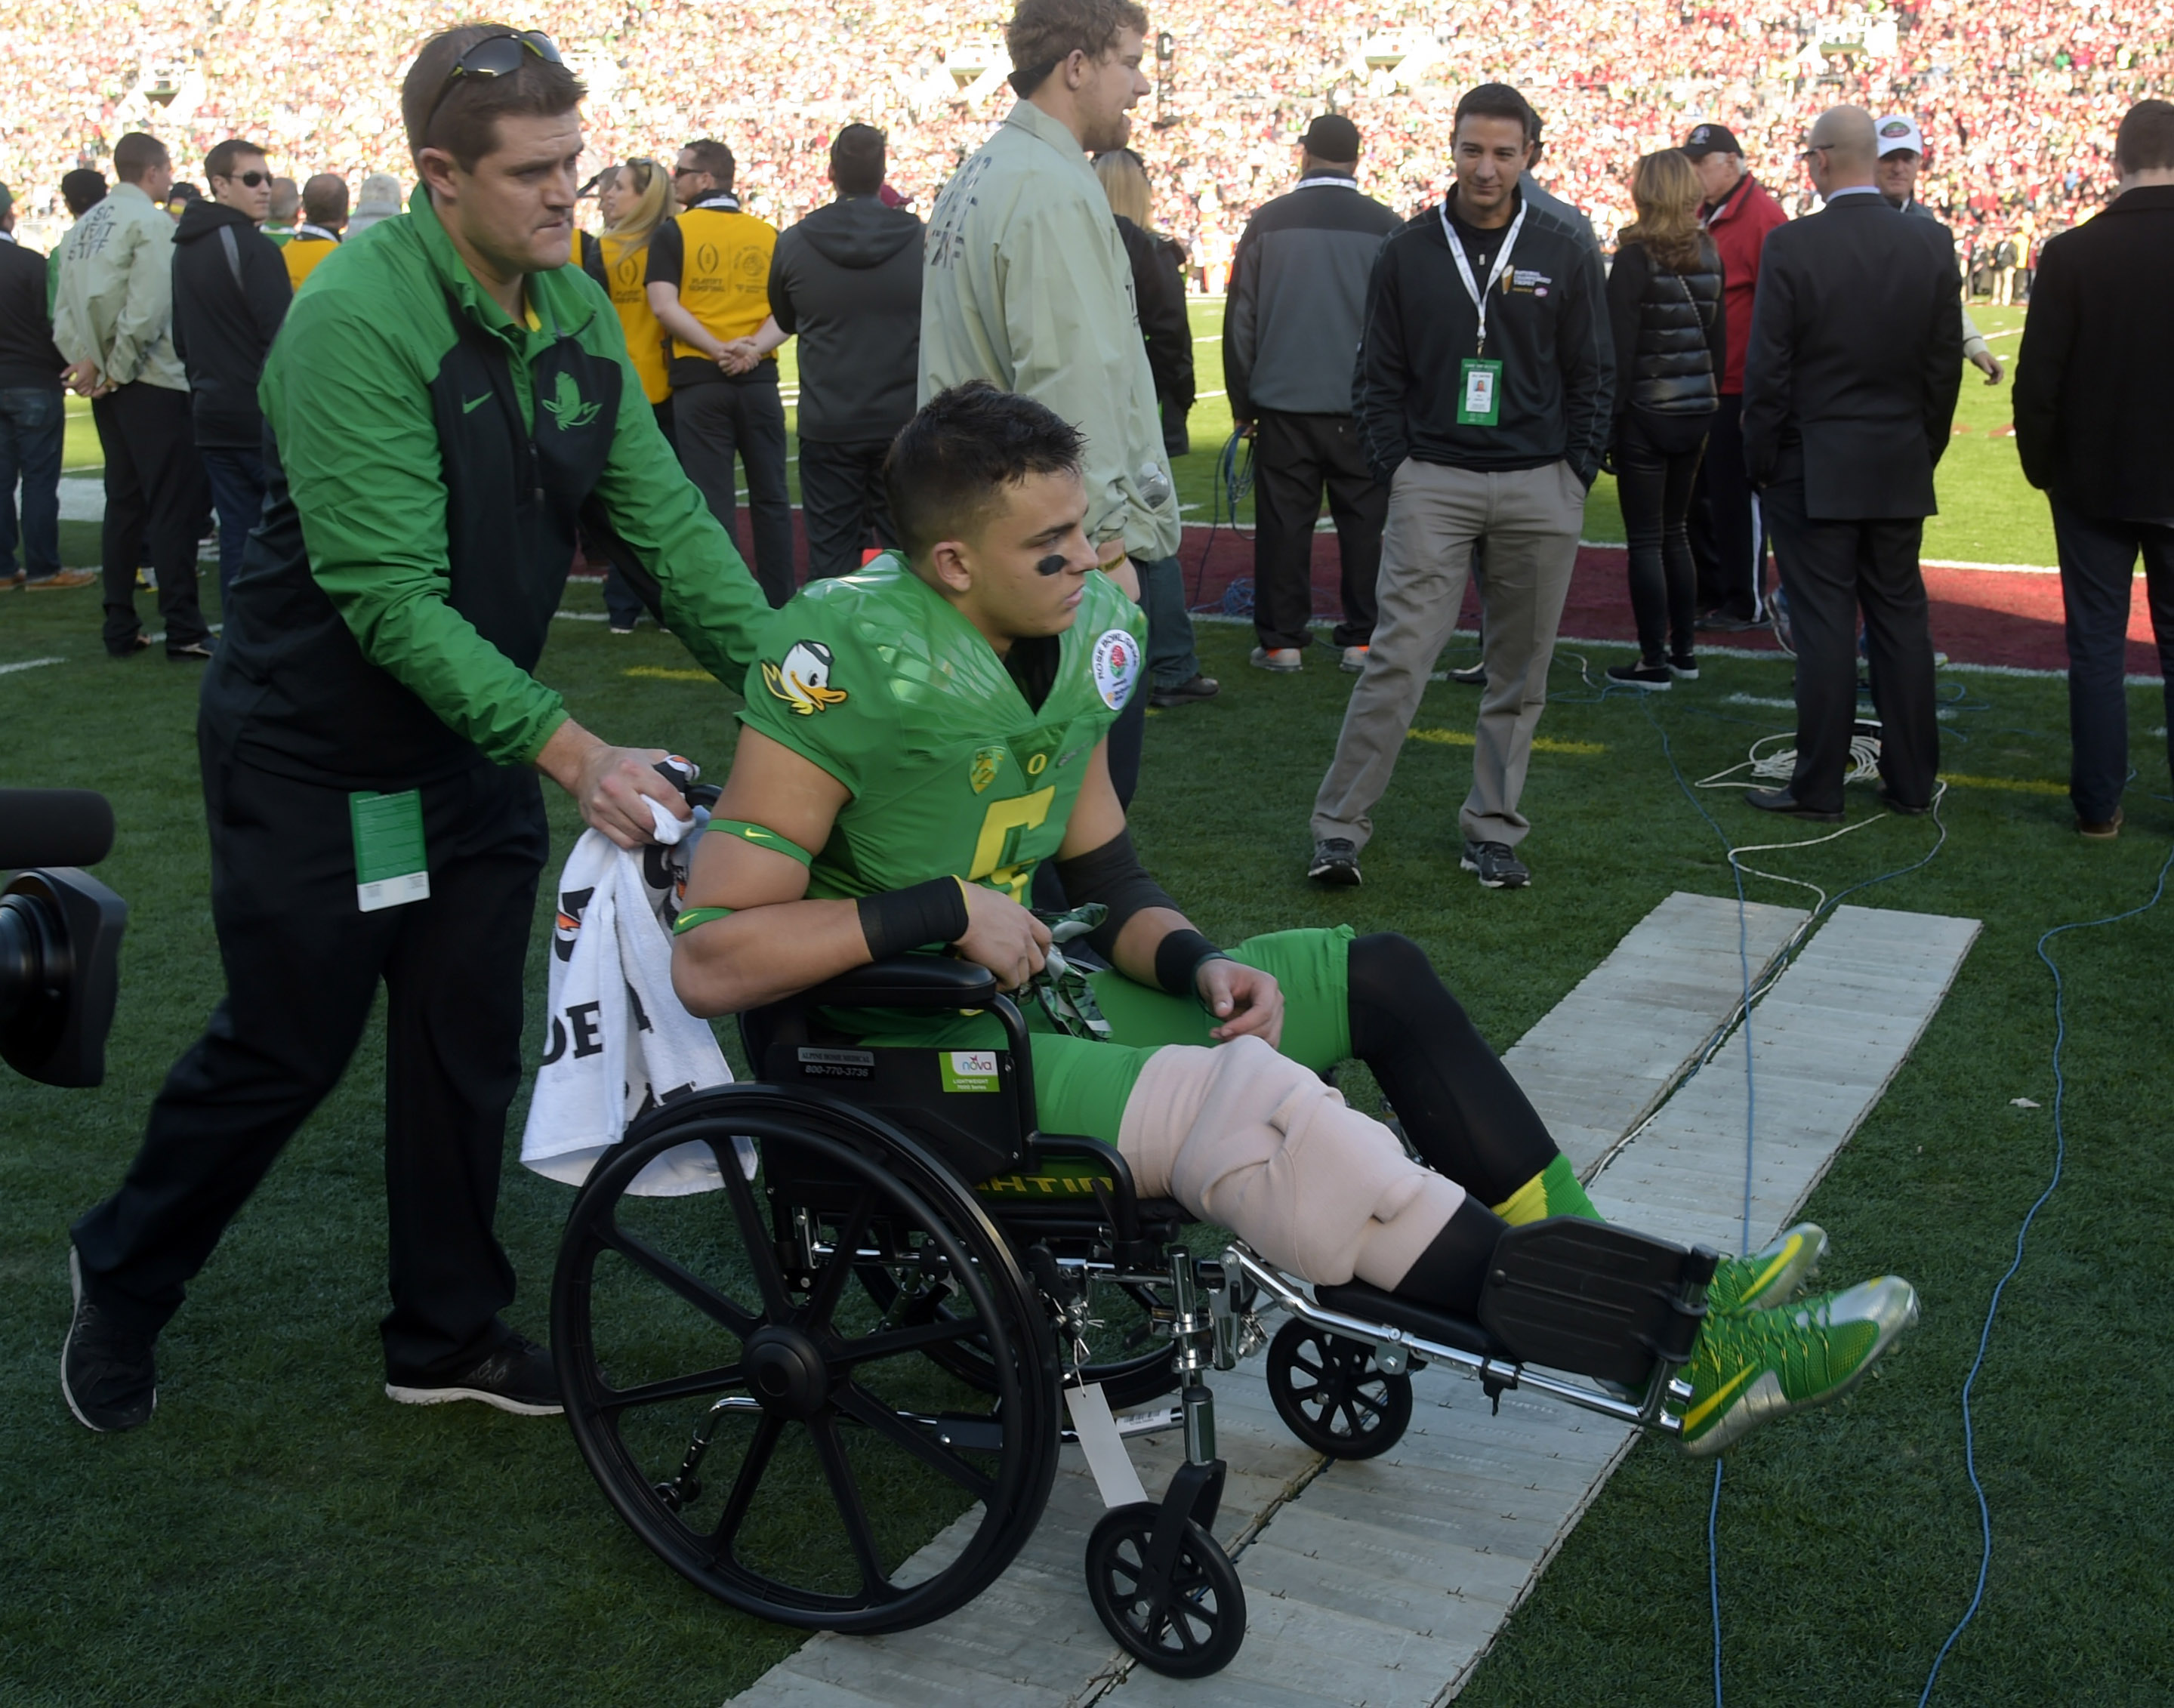 USA hurdler Devon Allen suffers knee injury